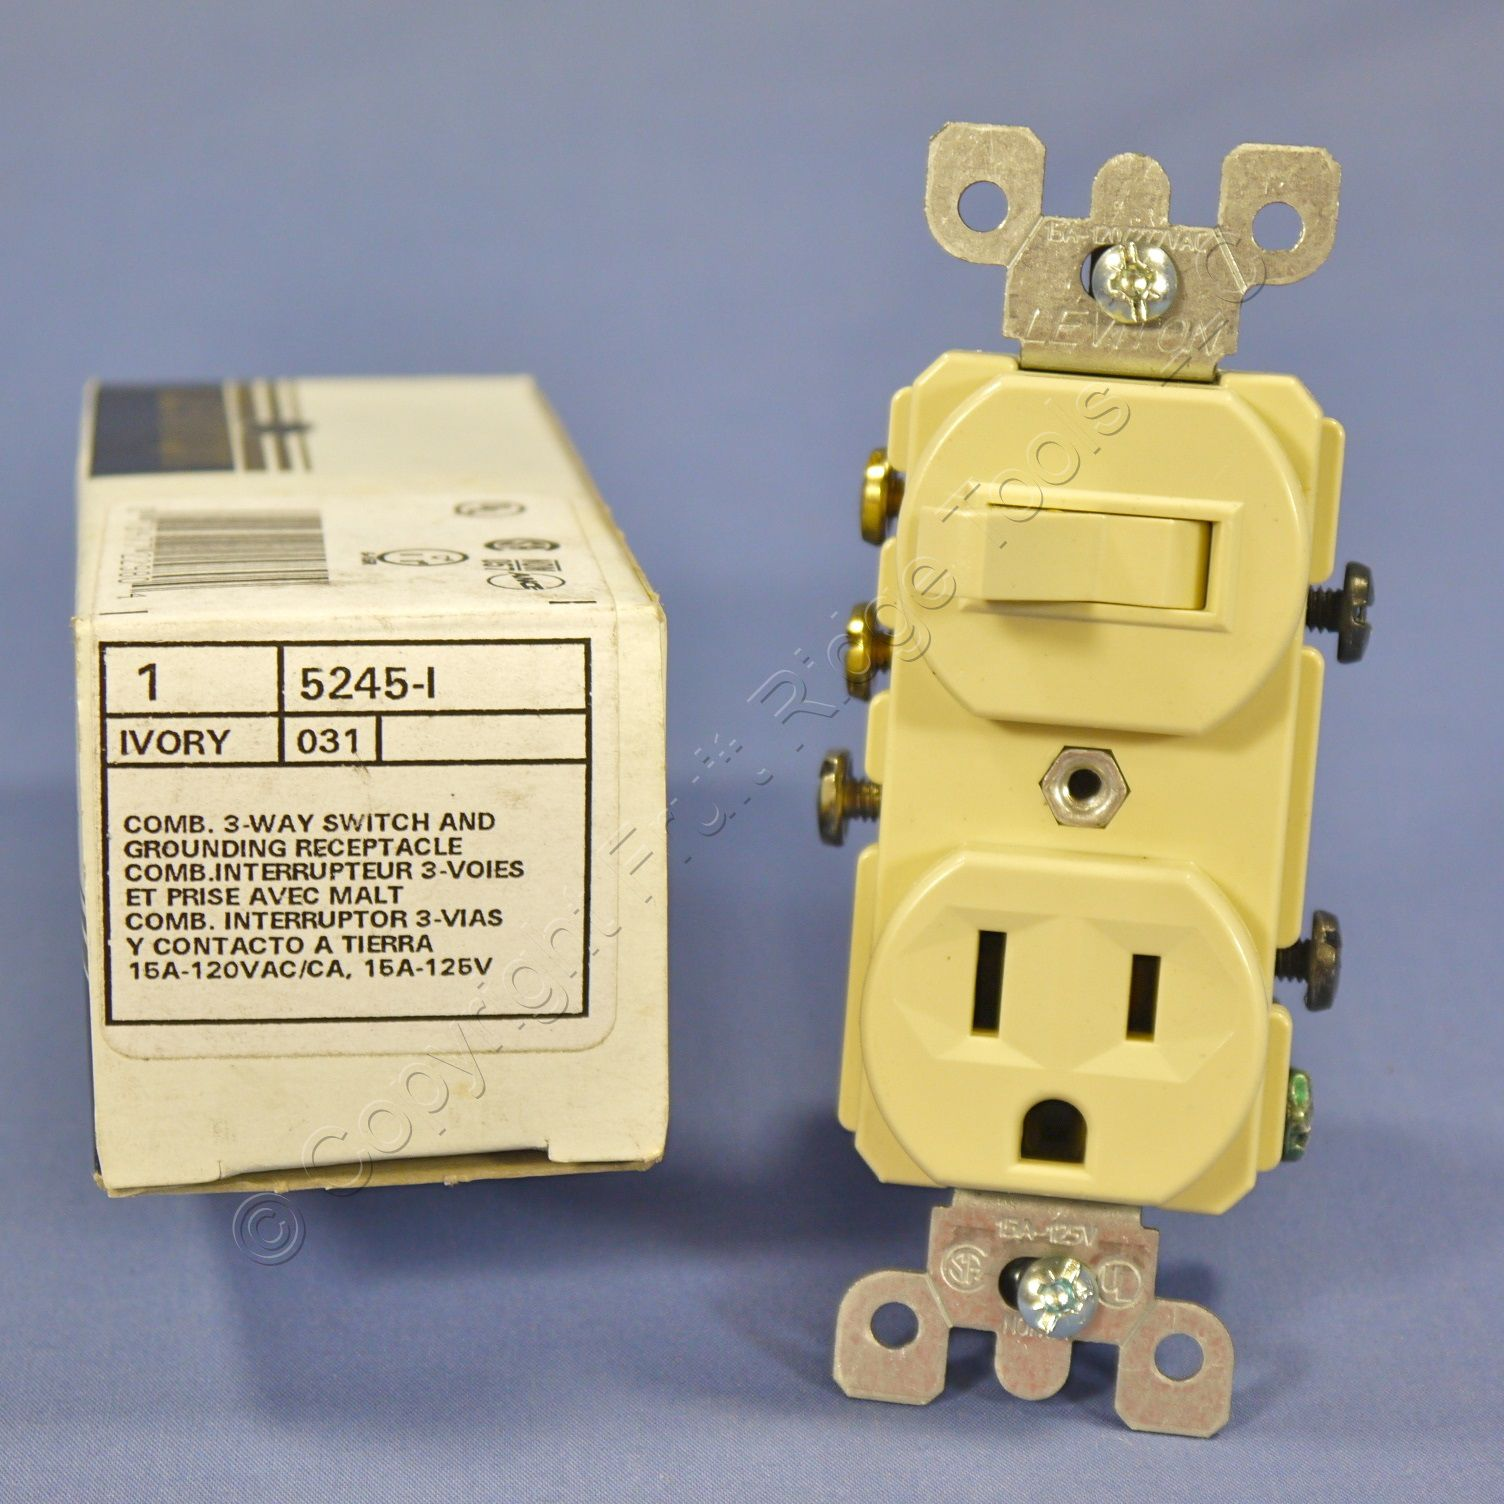 3 way outlet ao smith century ac motor wiring diagram leviton ivory combination light switch